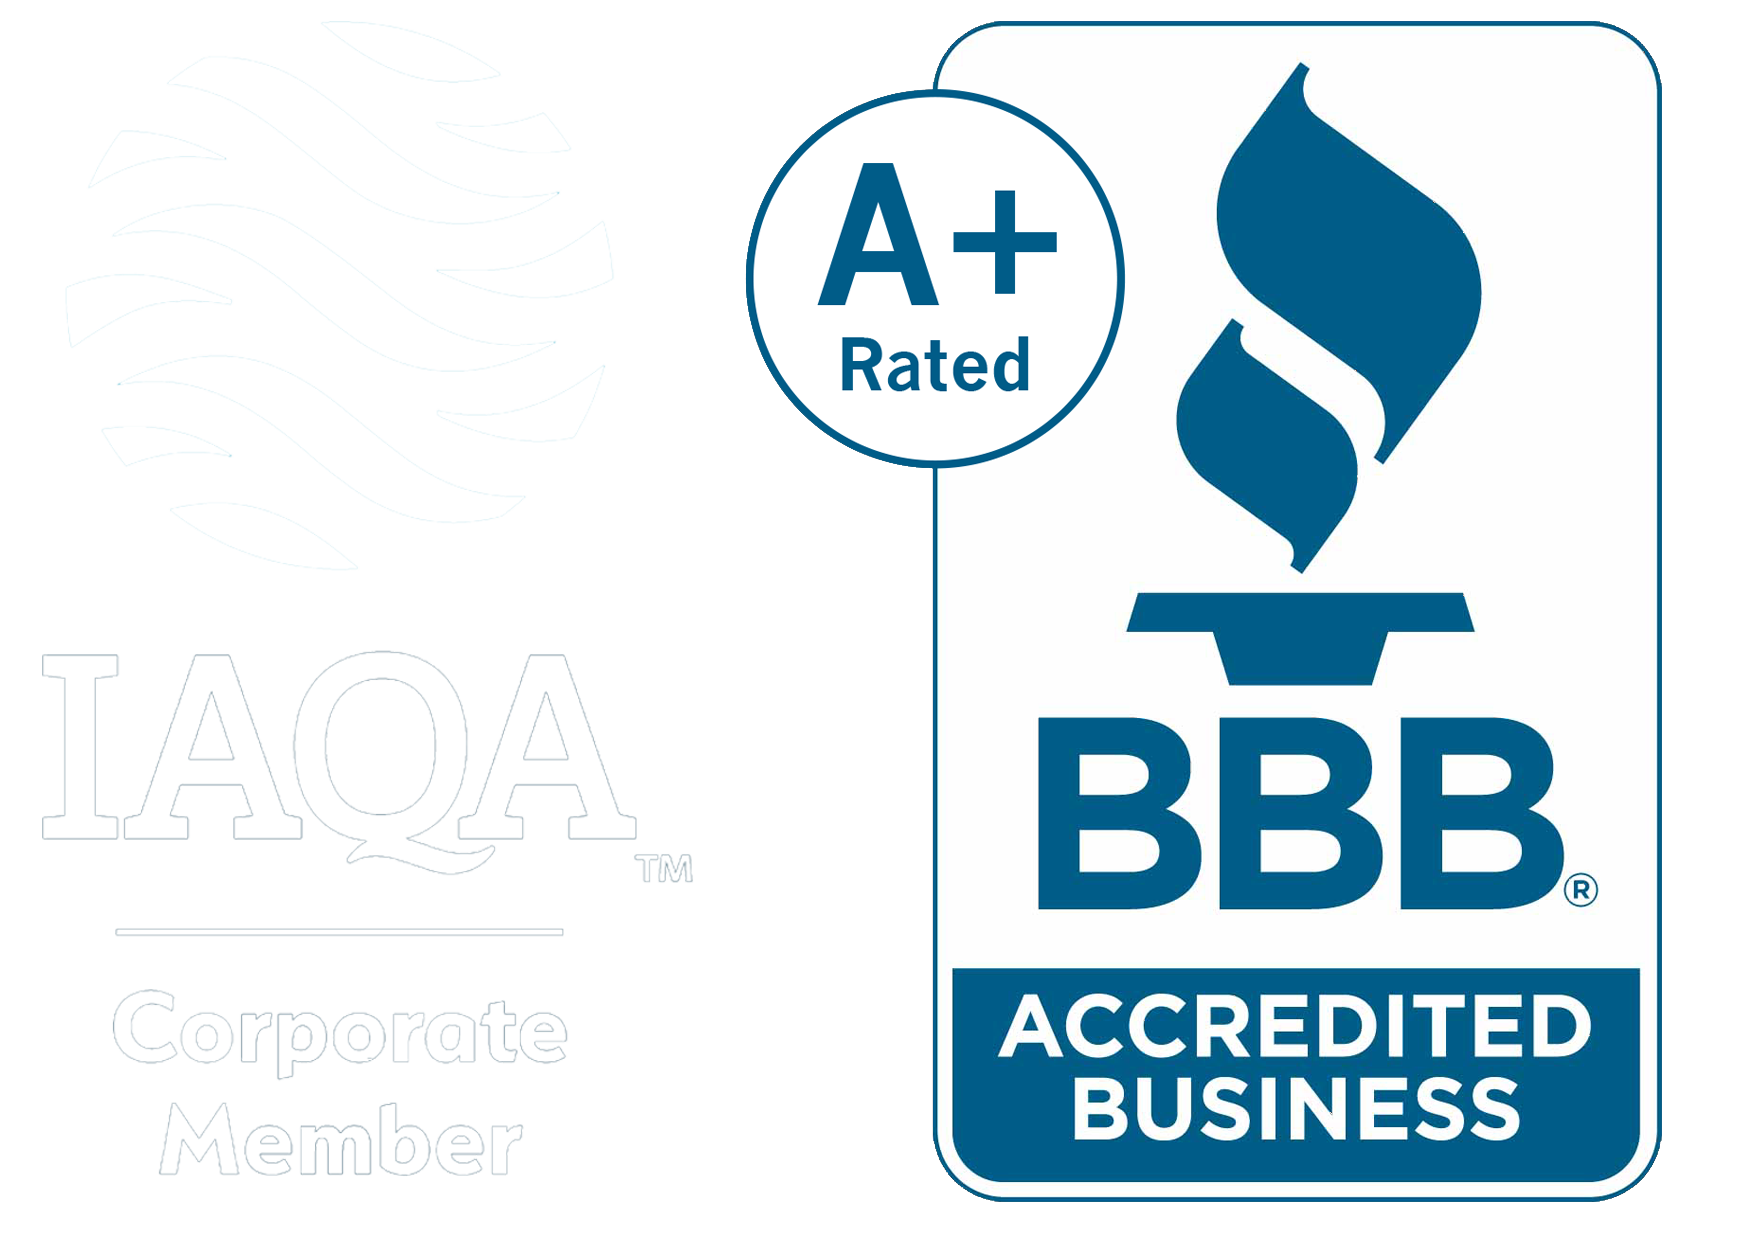 Refresh Smart Home as a Better Business Bureau A+ IAQA